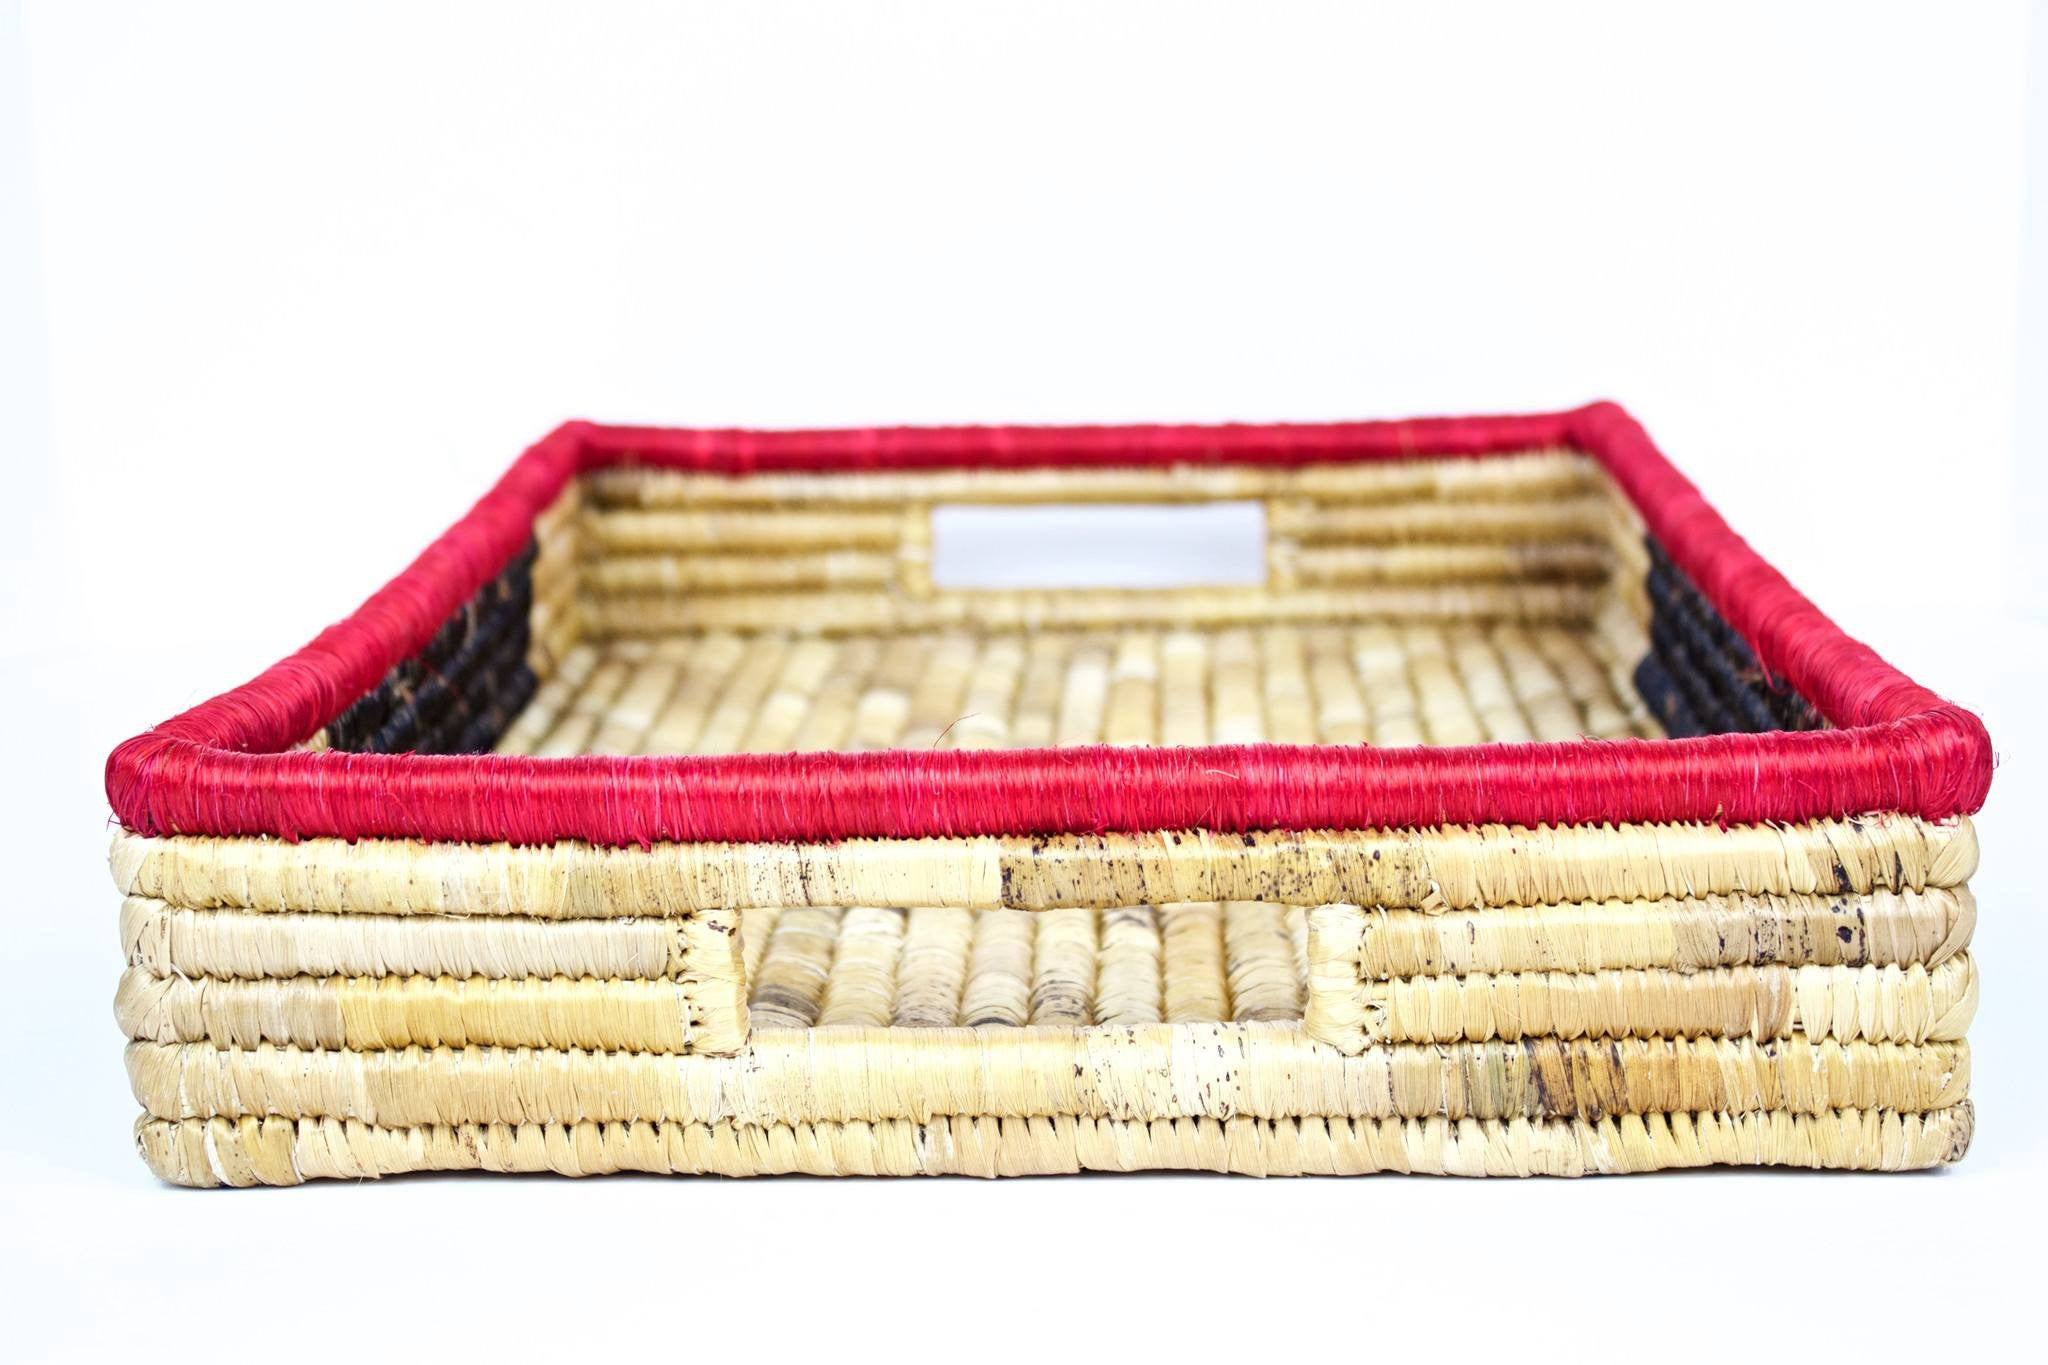 Bedawi Decorative Tray - Songa Designs International